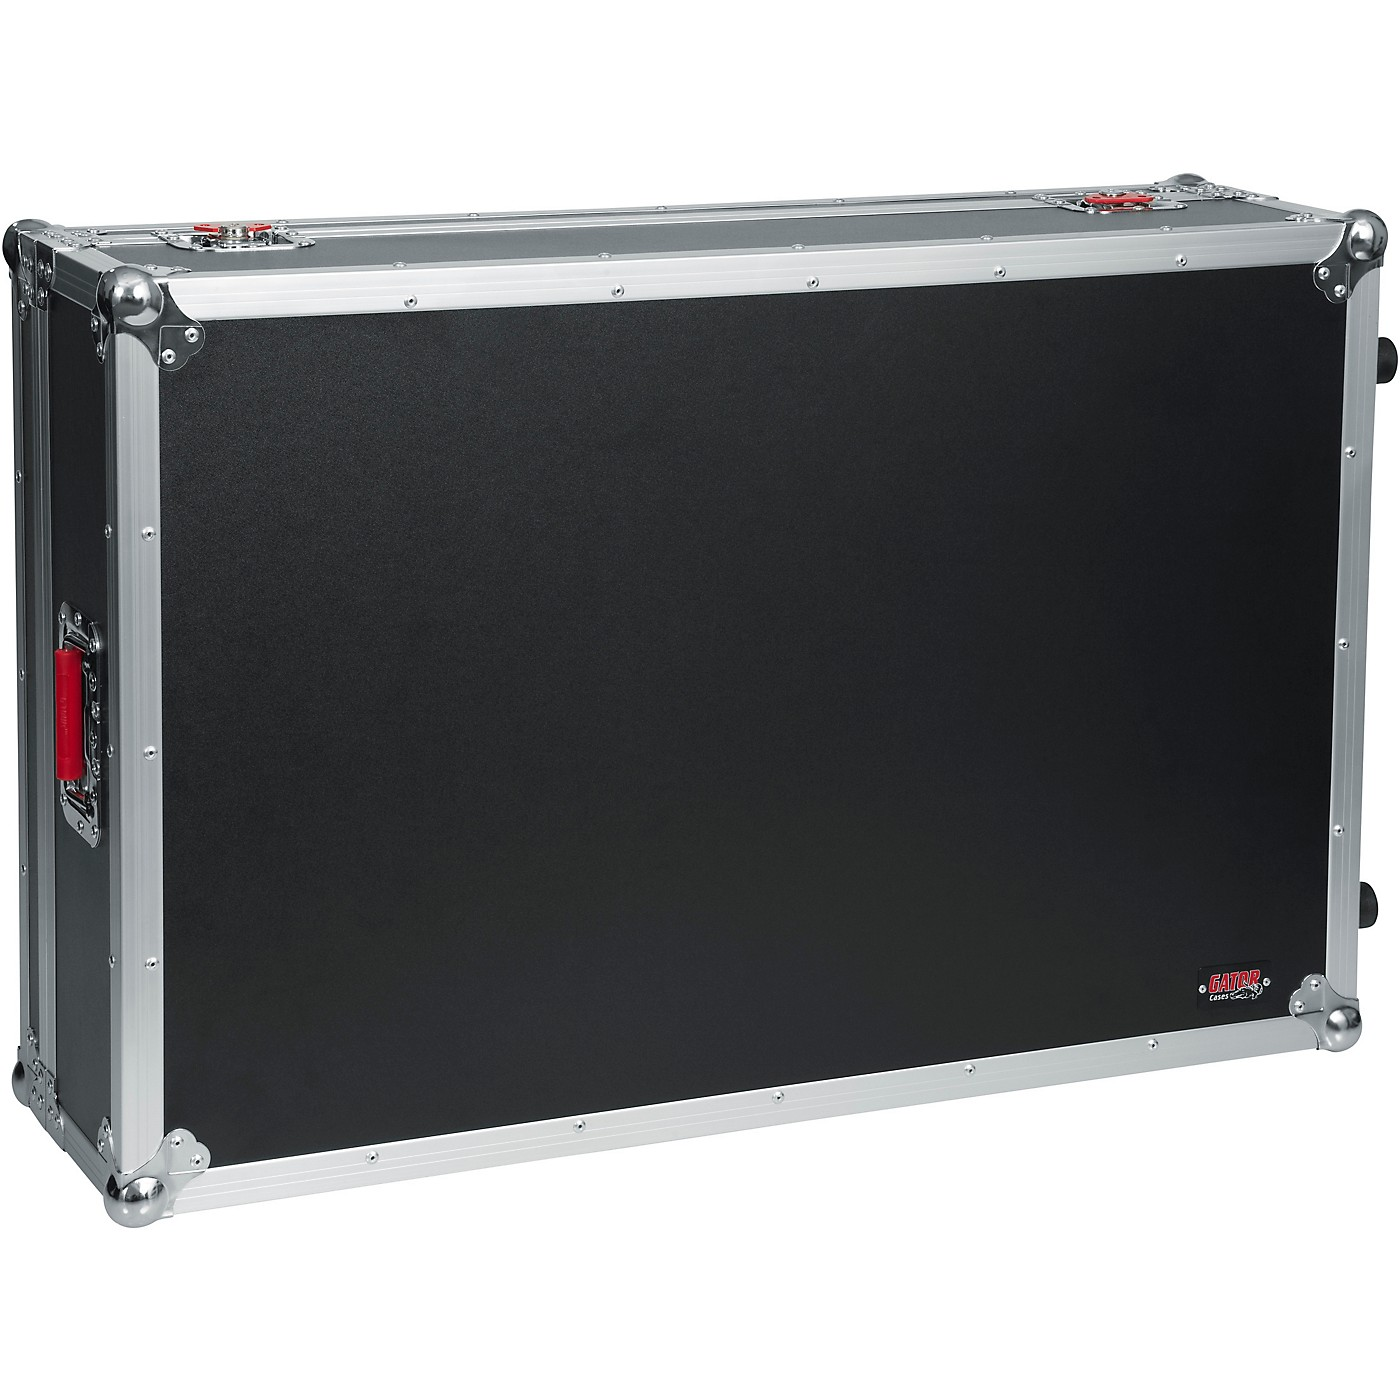 Gator G-TOURX32NDH ATA Road Case for Behringer X32 Mixer thumbnail